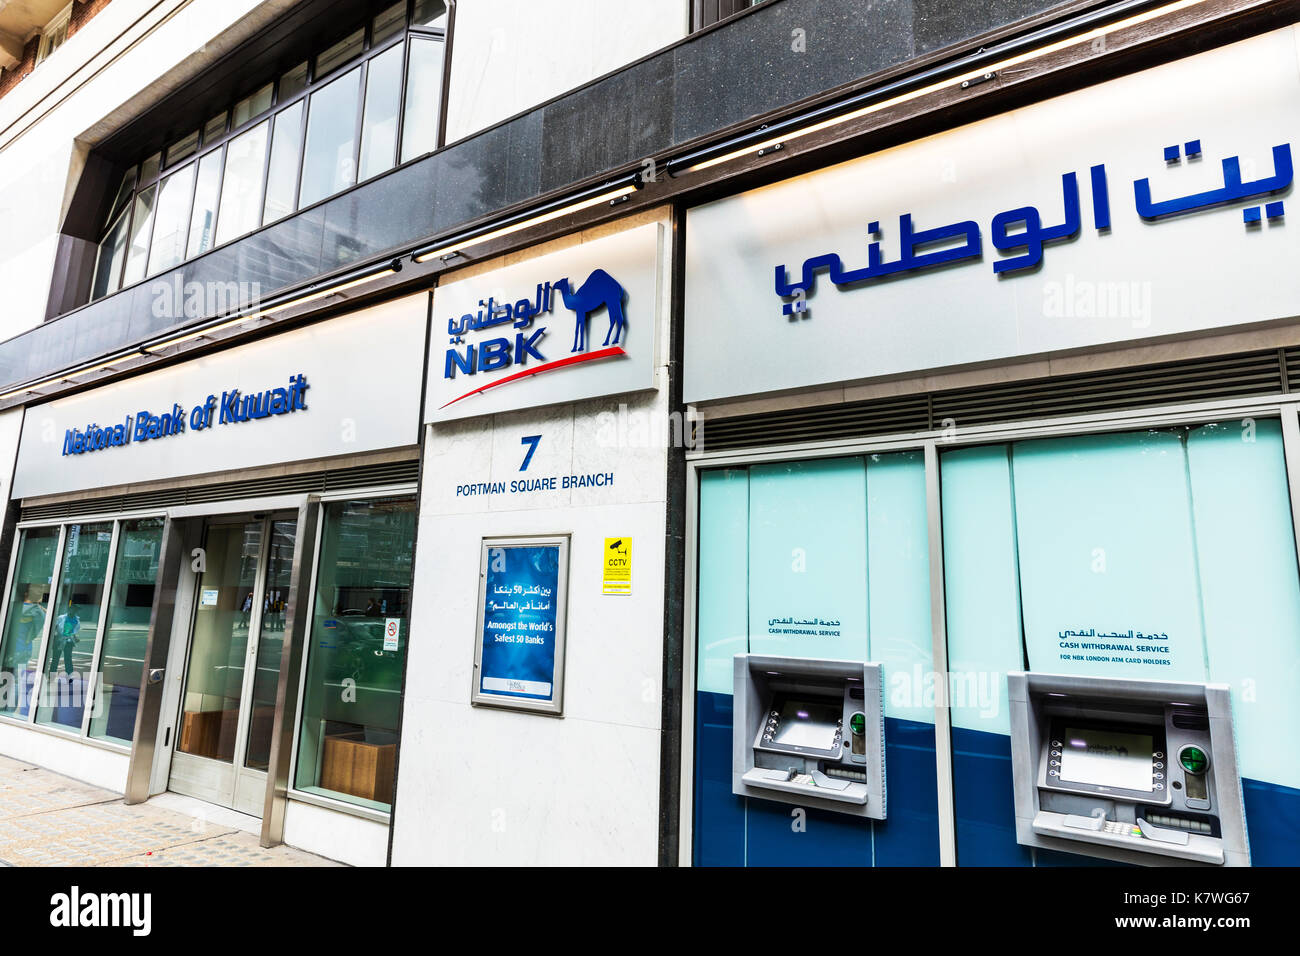 National Bank Of Kuwait, NBK bank, National Bank Of Kuwait Portman Square Branch, National Bank Of Kuwait sign, National Bank Of Kuwait building, UK - Stock Image